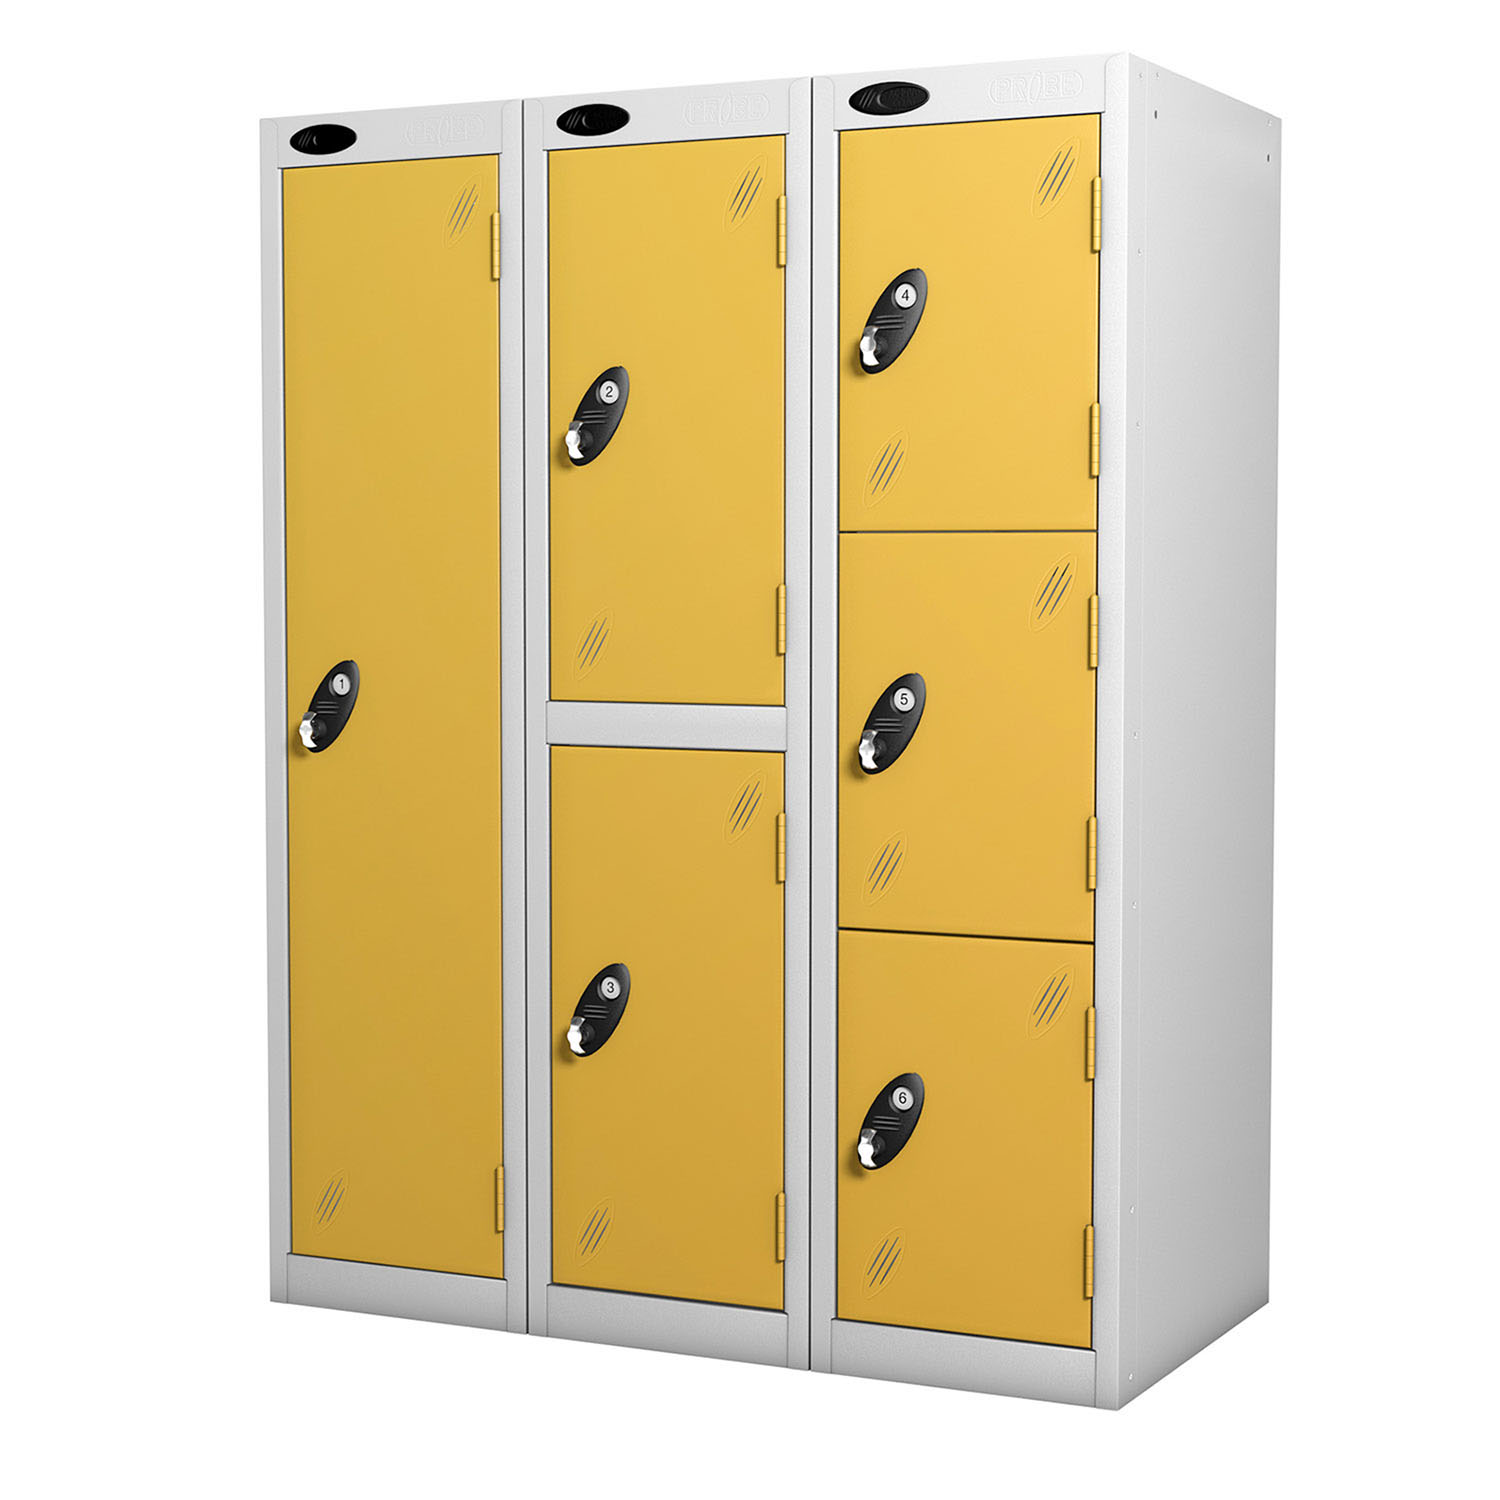 Probe 6 doors low locker in yellow colour